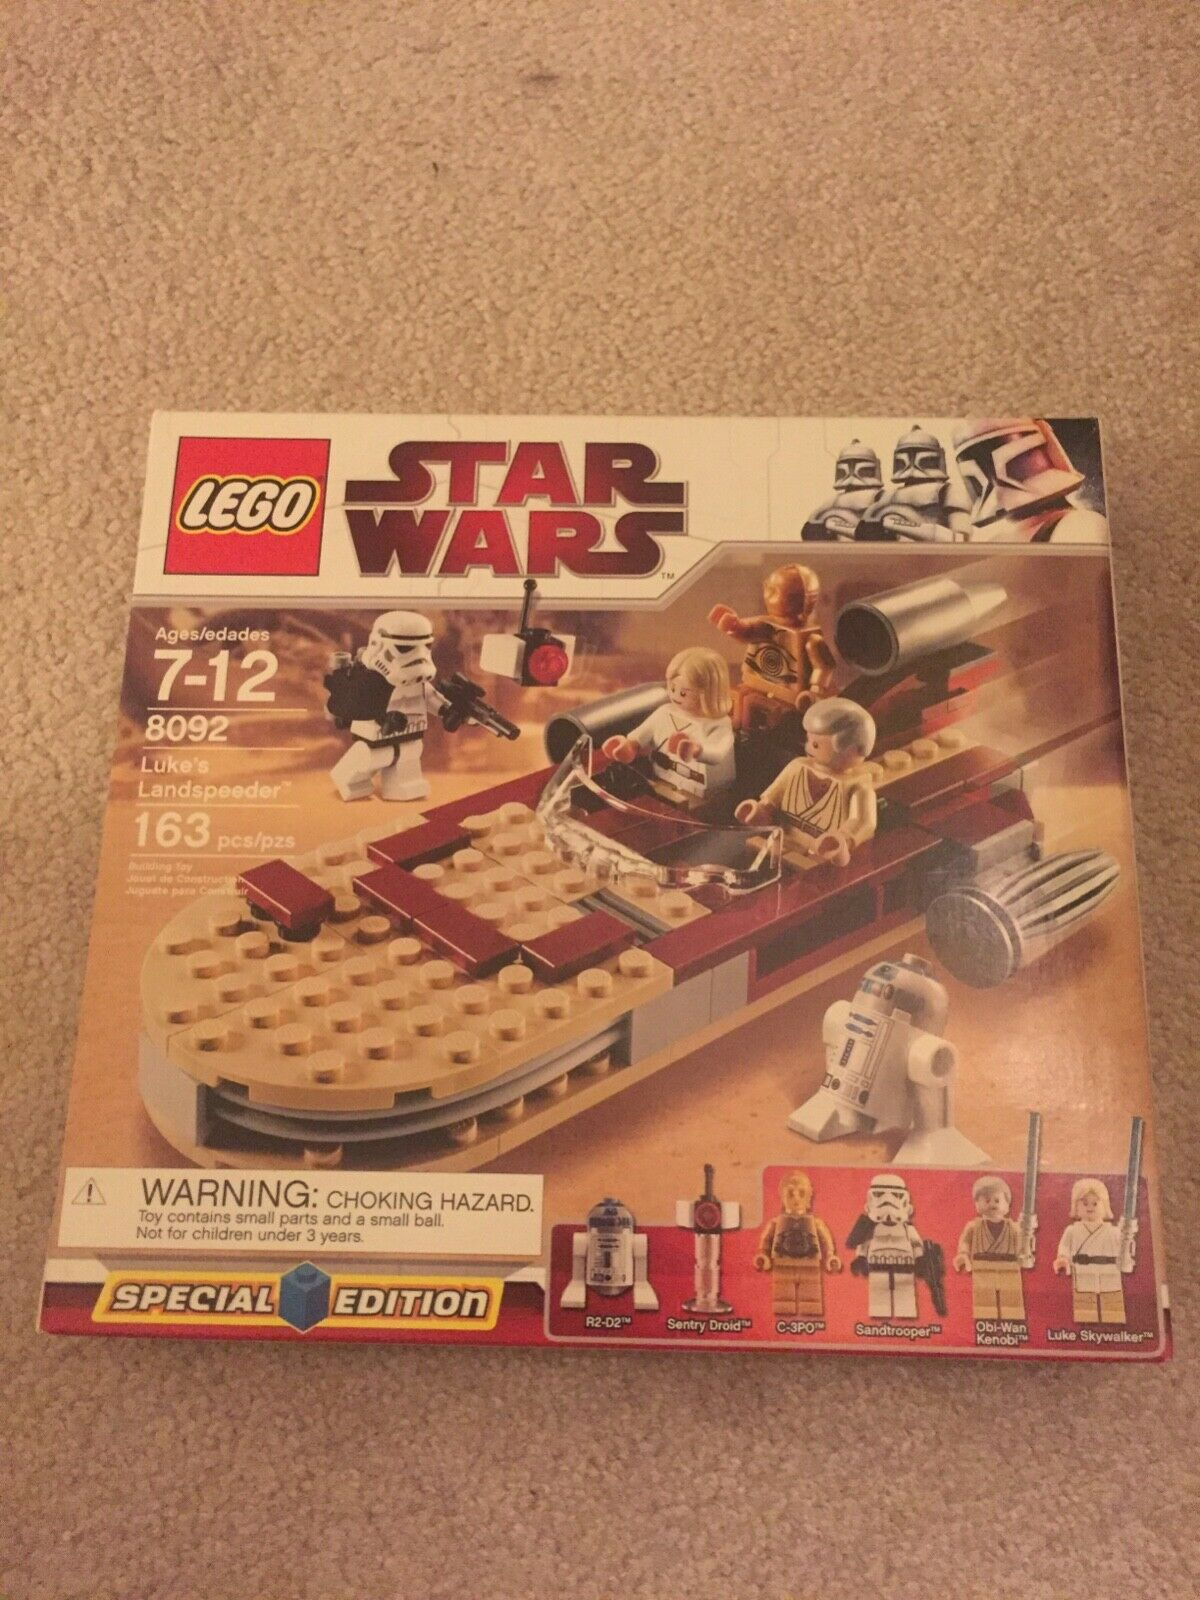 LEGO Star Wars 8092 special edition Luke's Landspeeder. NEW. Factory sealed.